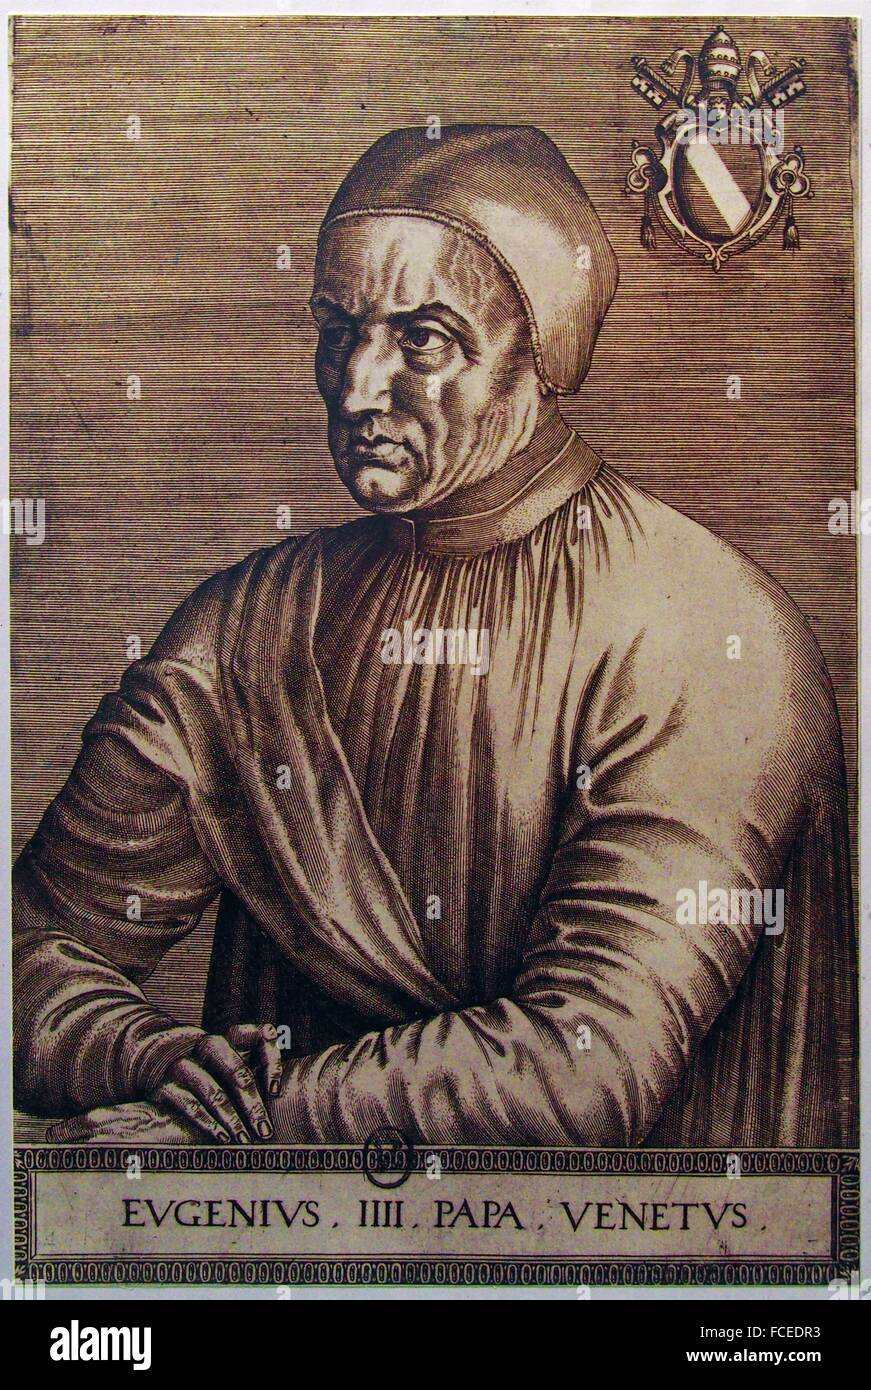 Portrait of Pope Eugenius IV, after Jean Fouquet. - Stock Image